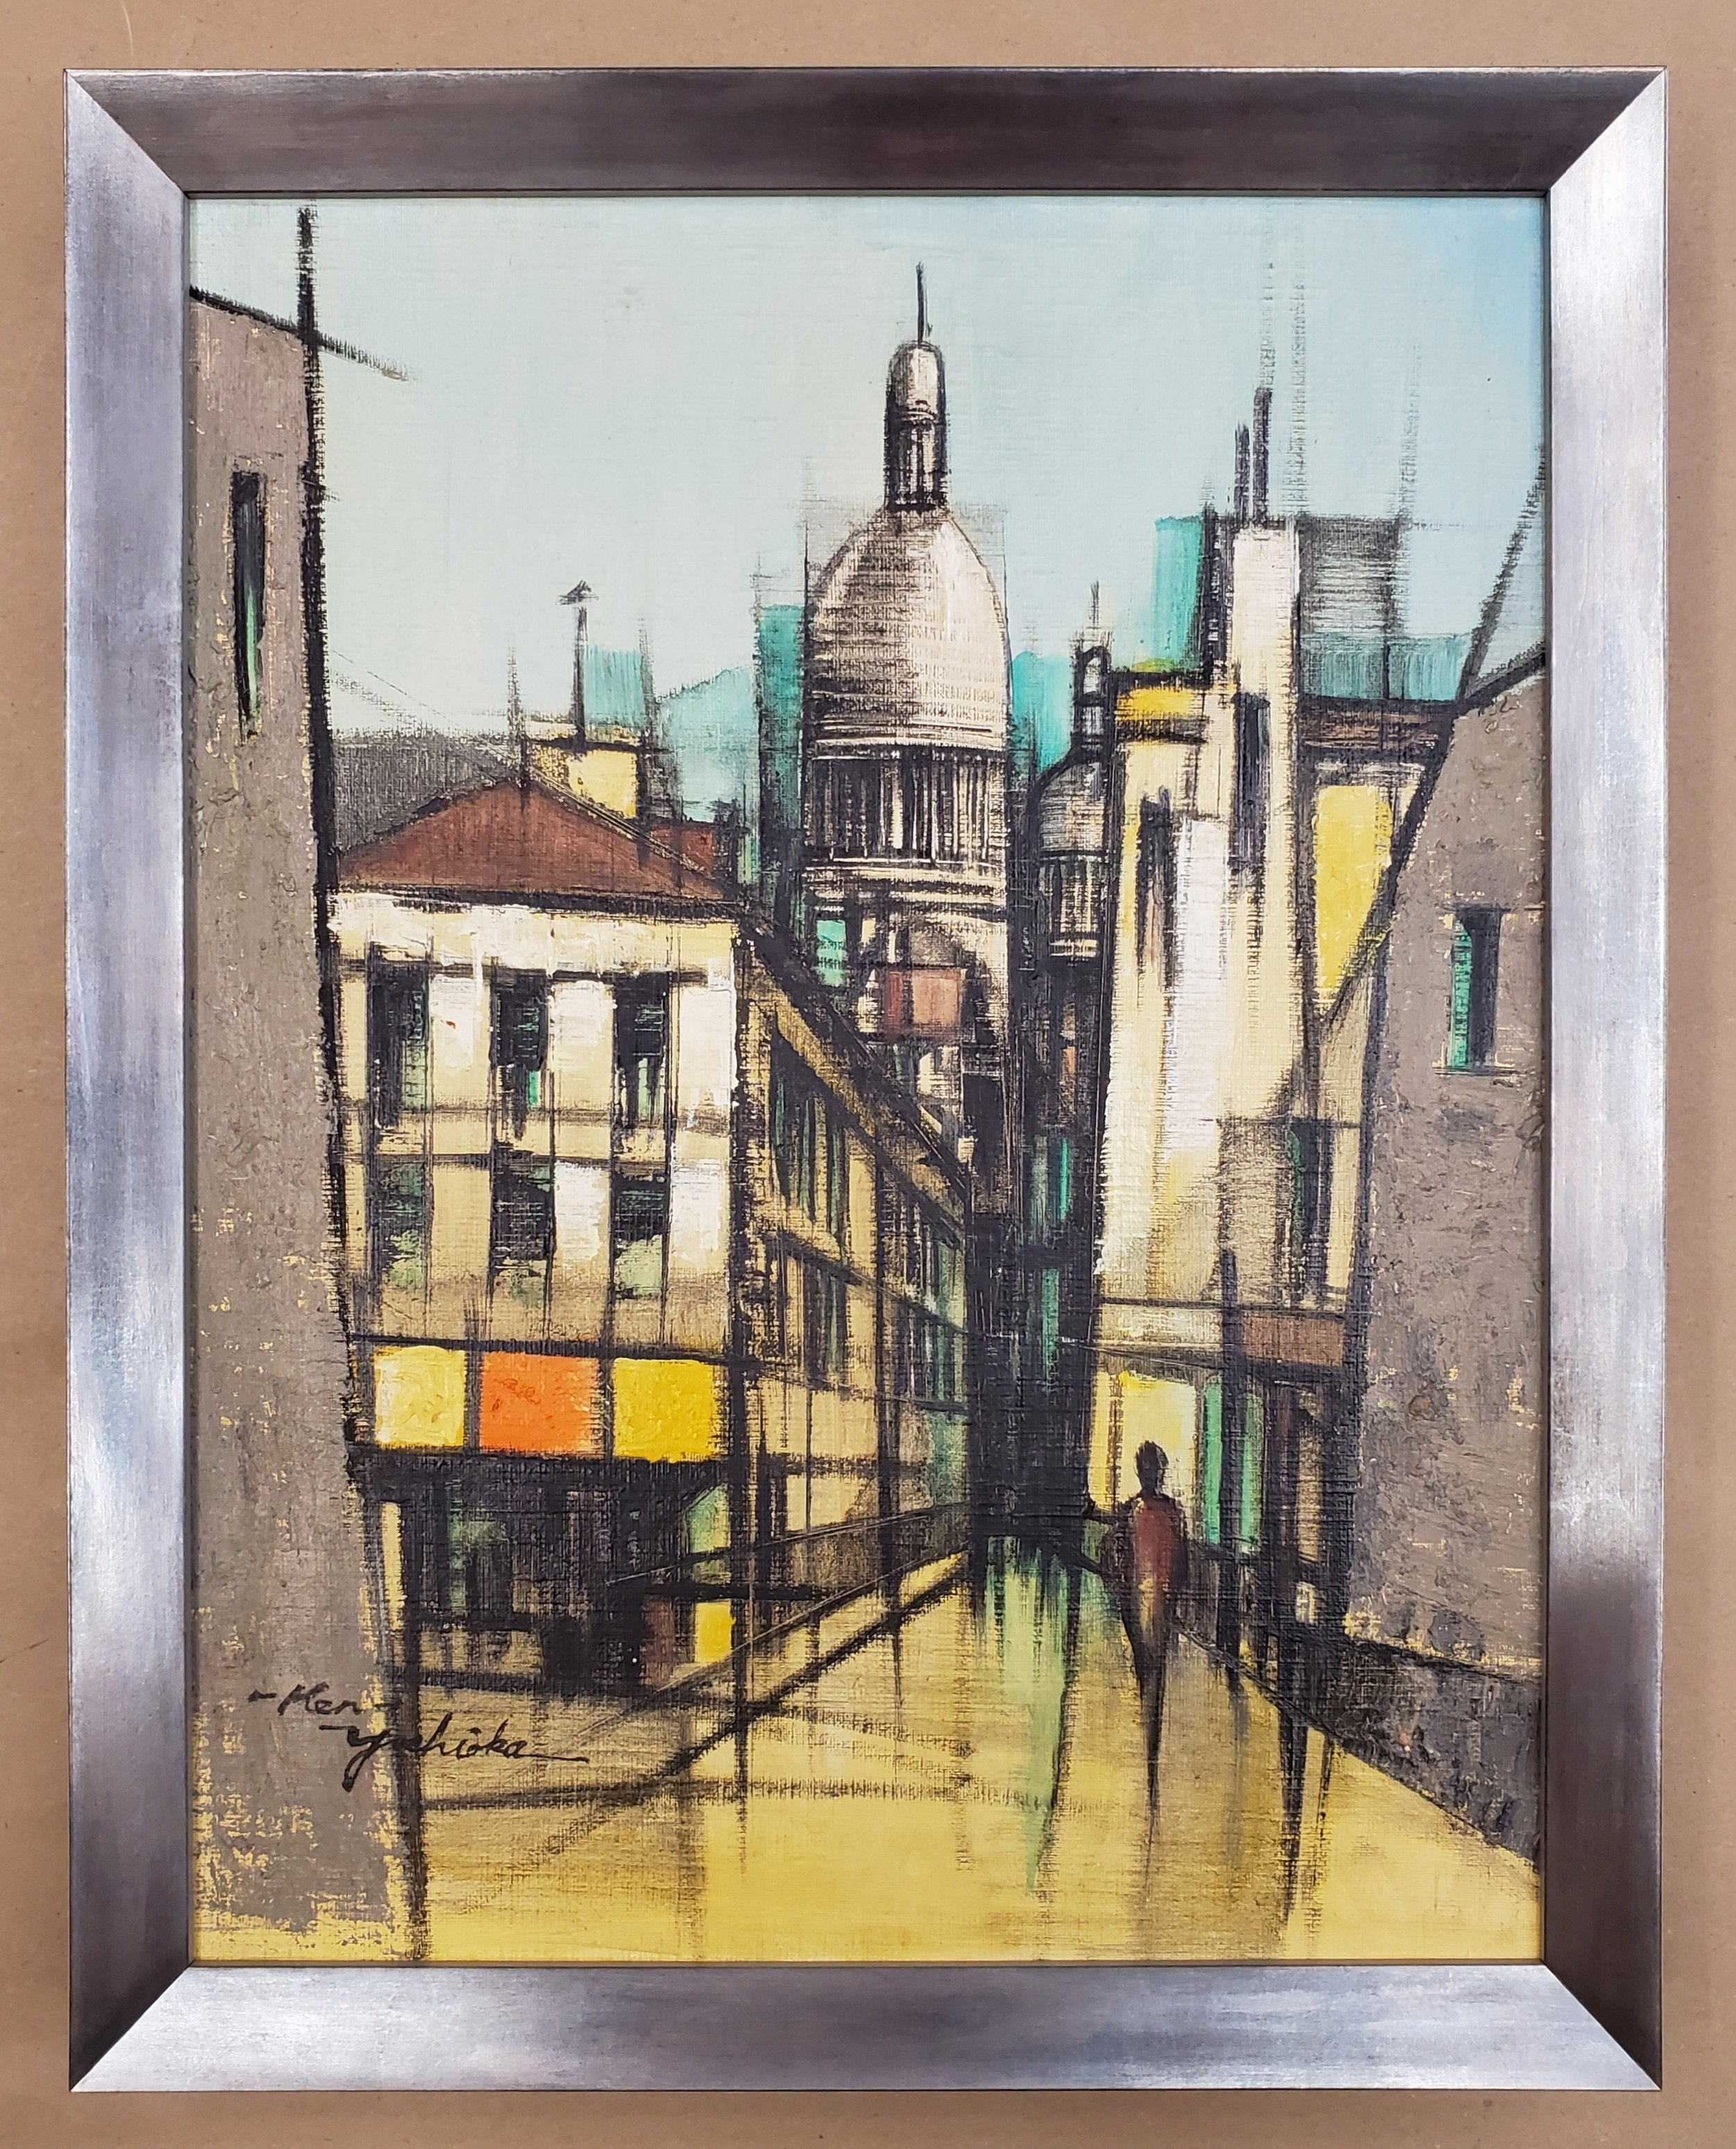 Vintage Parisian Landscape Painting in Mid-Century Modern Silver Frame - Check out how the beveled frame draws your eye into the perspective of this cityscape. The frame has a blonde wood side for added vintage detail.